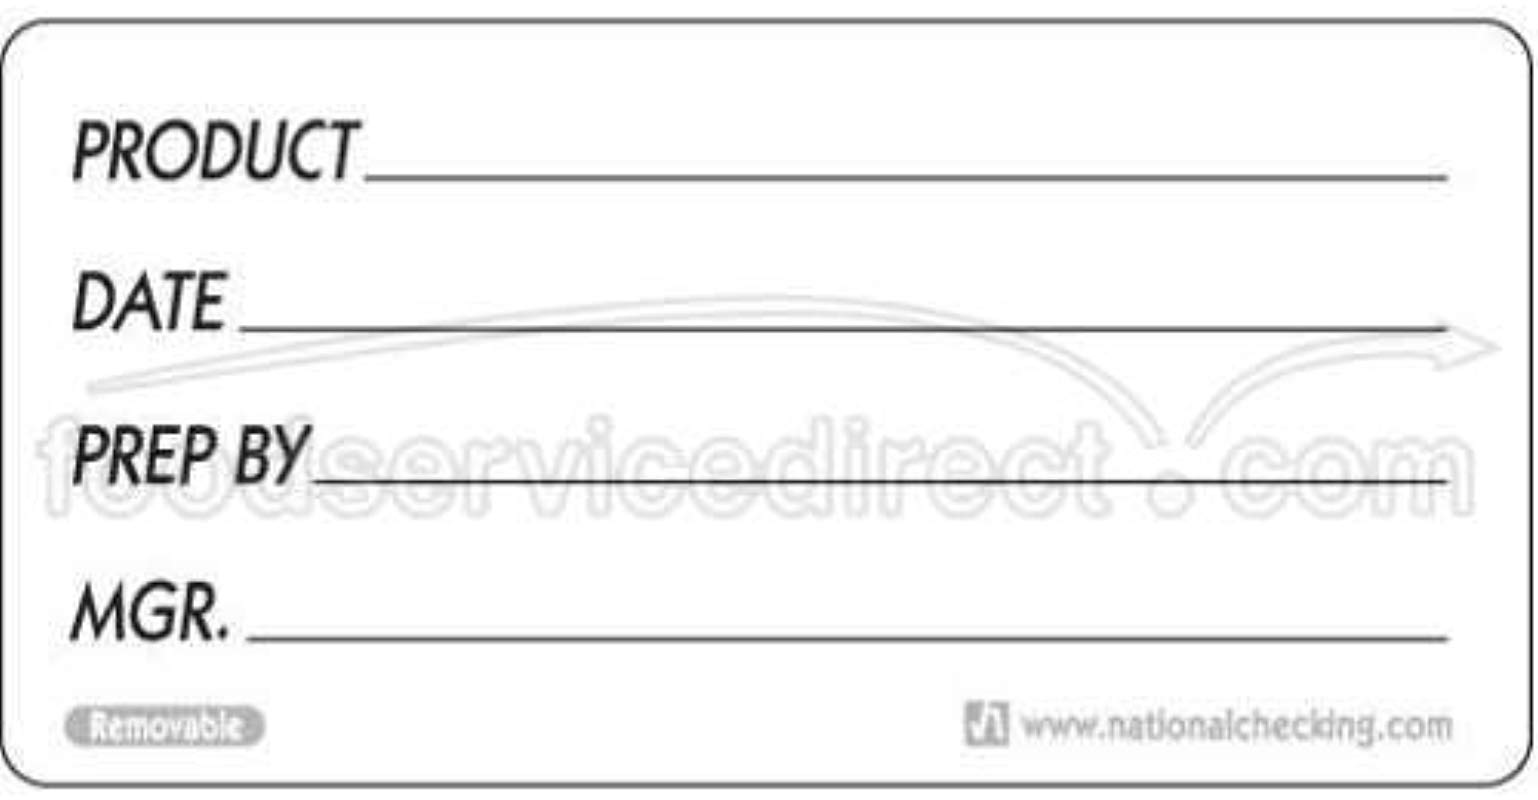 National Checking Company Dateit Product Removable Label 2 X 4 Inch 500 Per Case